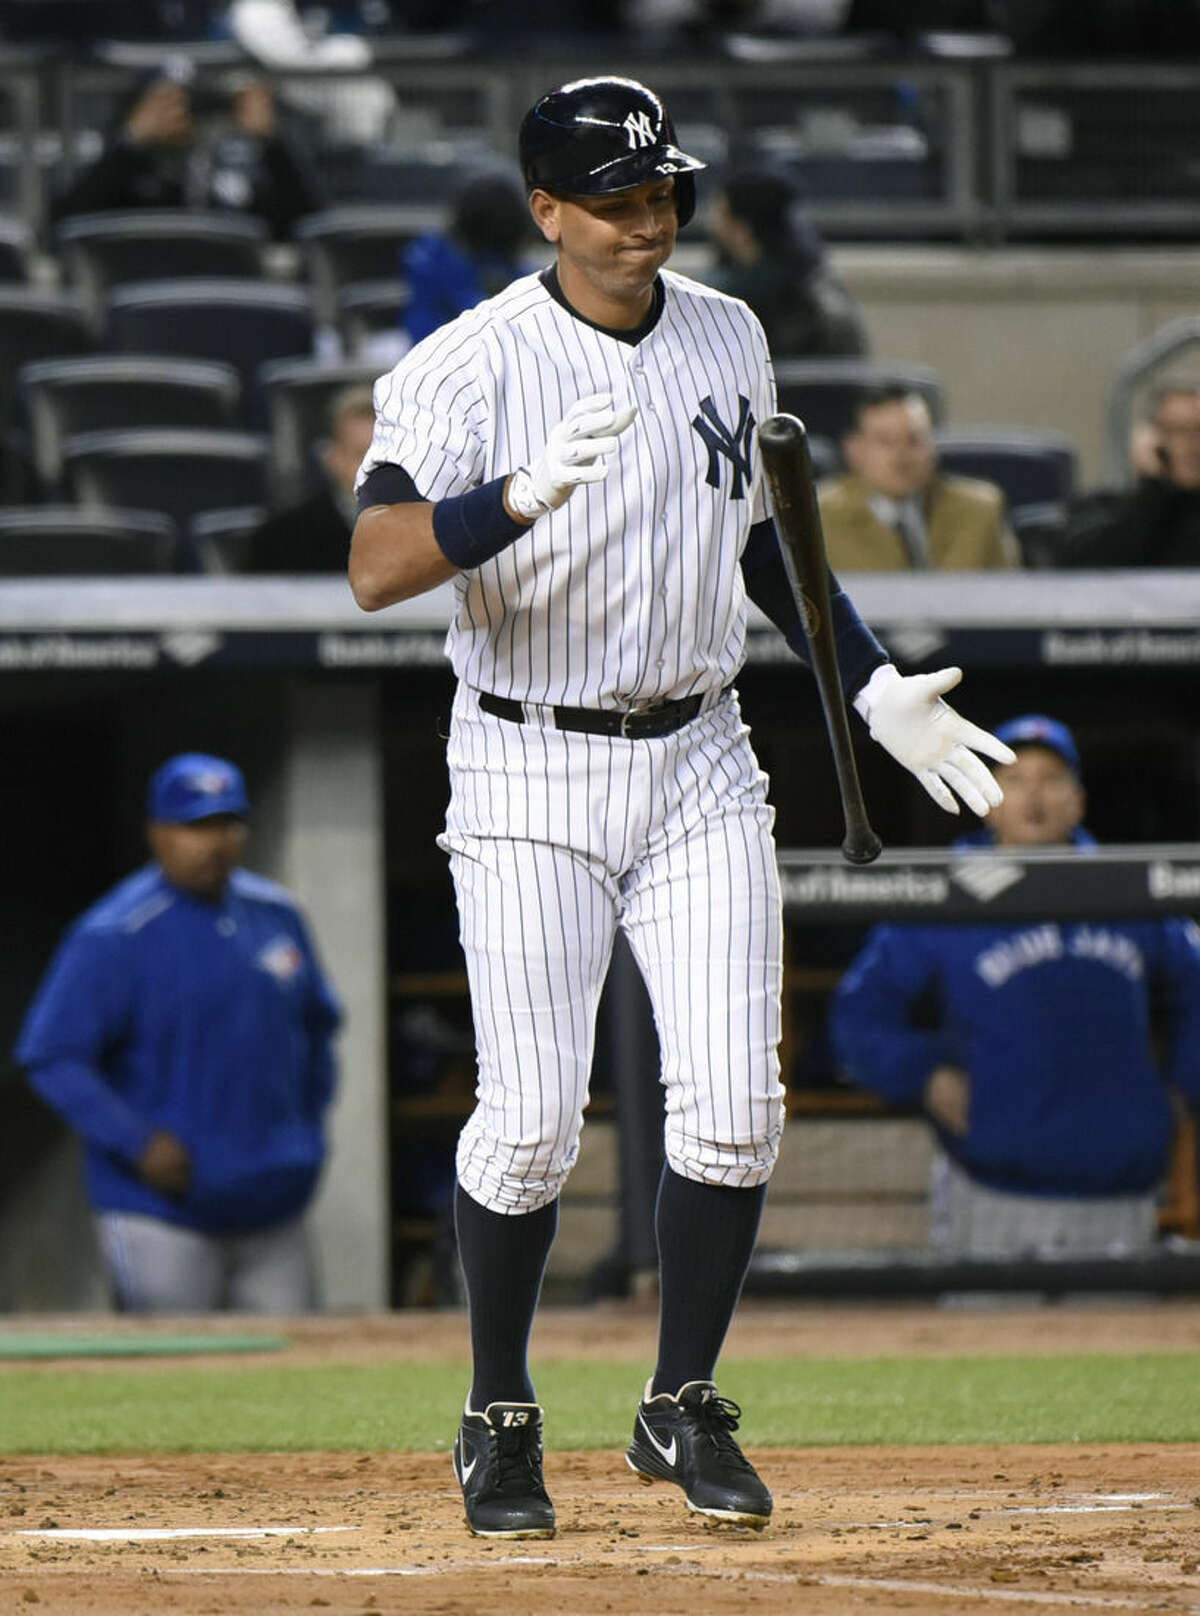 New York Yankees' Alex Rodriguez reacts after striking out to end the second inning of a baseball game against the Toronto Blue Jays Wednesday, April 8, 2015, at Yankee Stadium in New York. (AP Photo/Bill Kostroun)